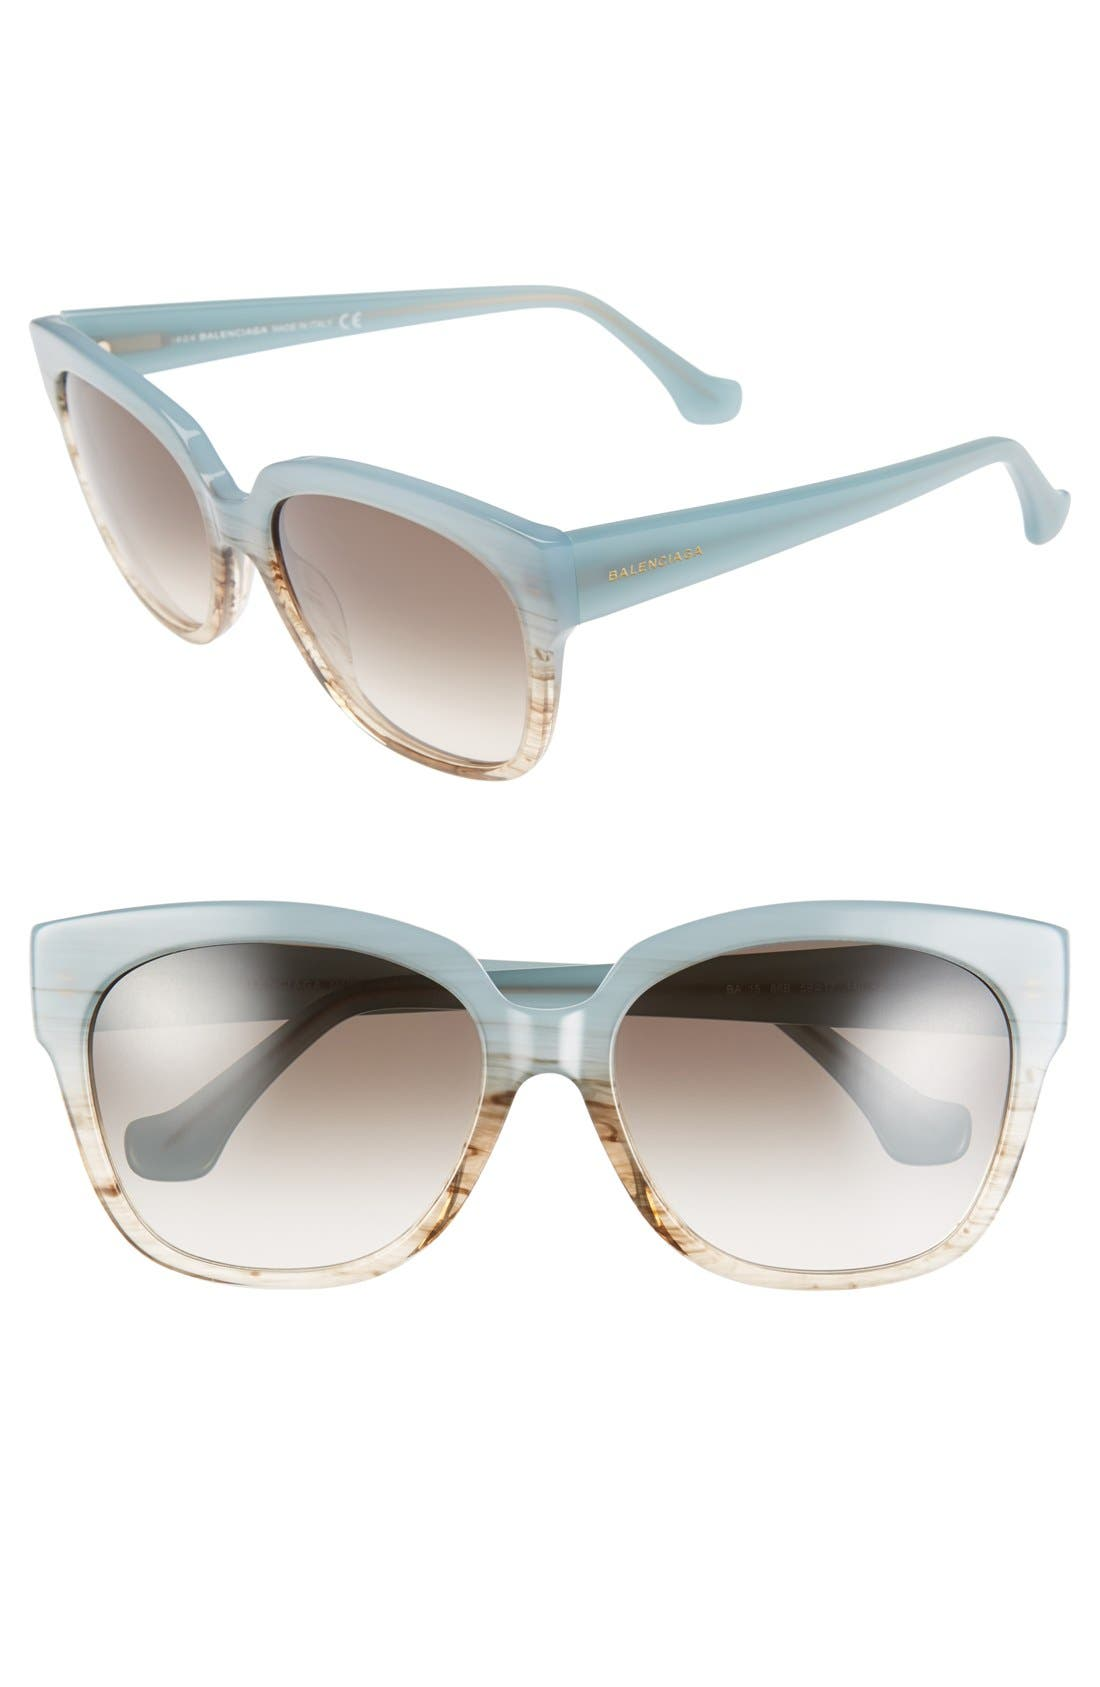 59mm 'BA0015' Sunglasses,                         Main,                         color, Aquamarine Gradient/ Brown